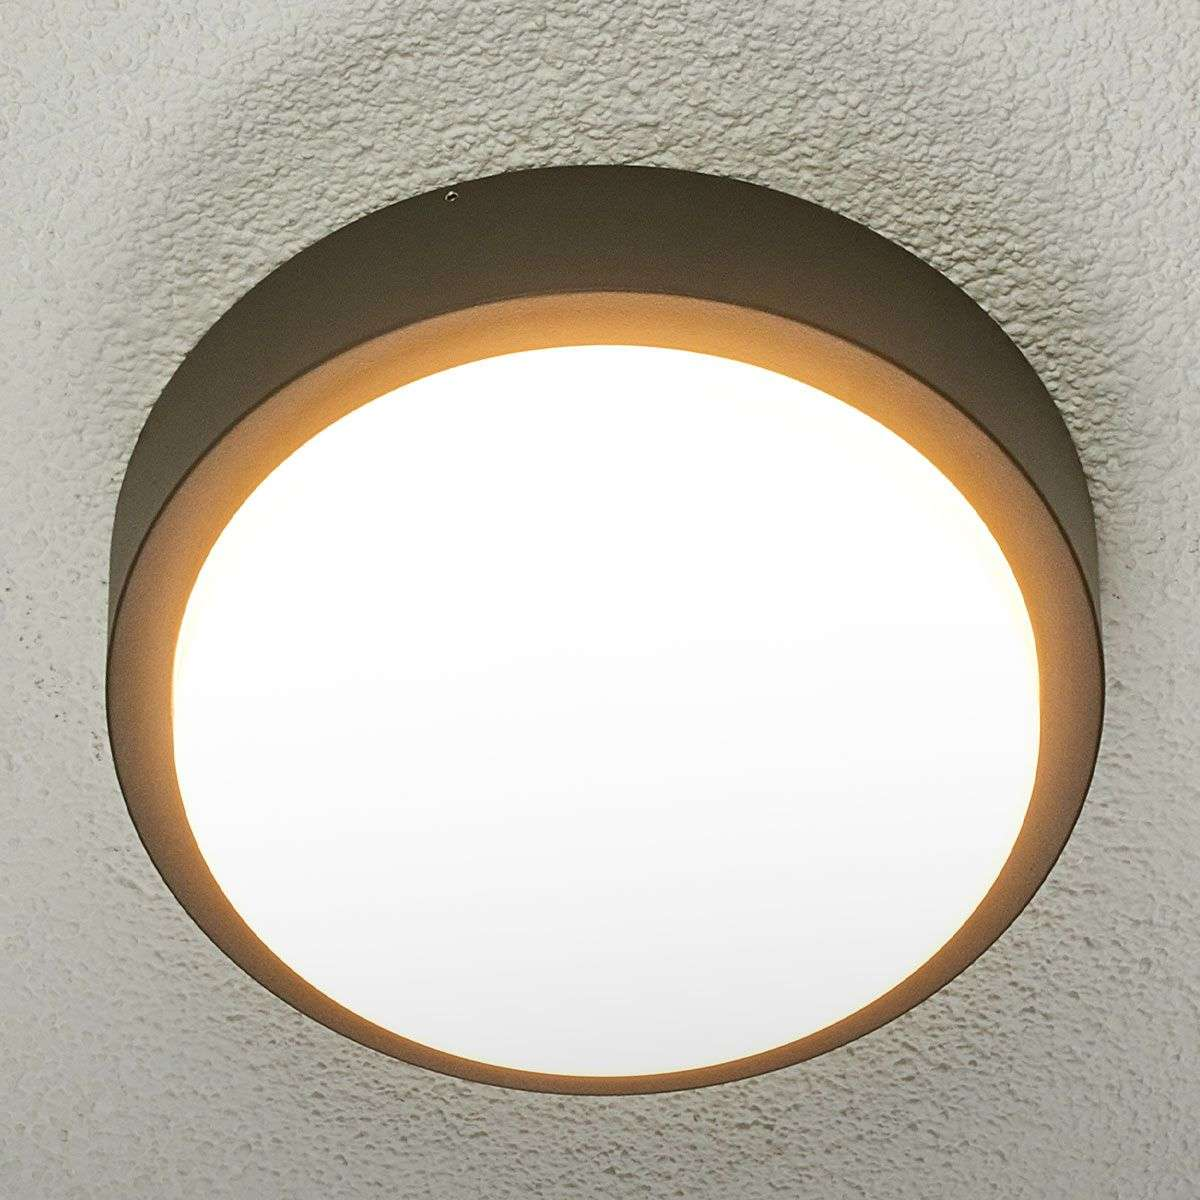 Round Led Outdoor Wall Light Maxine 9955002 32